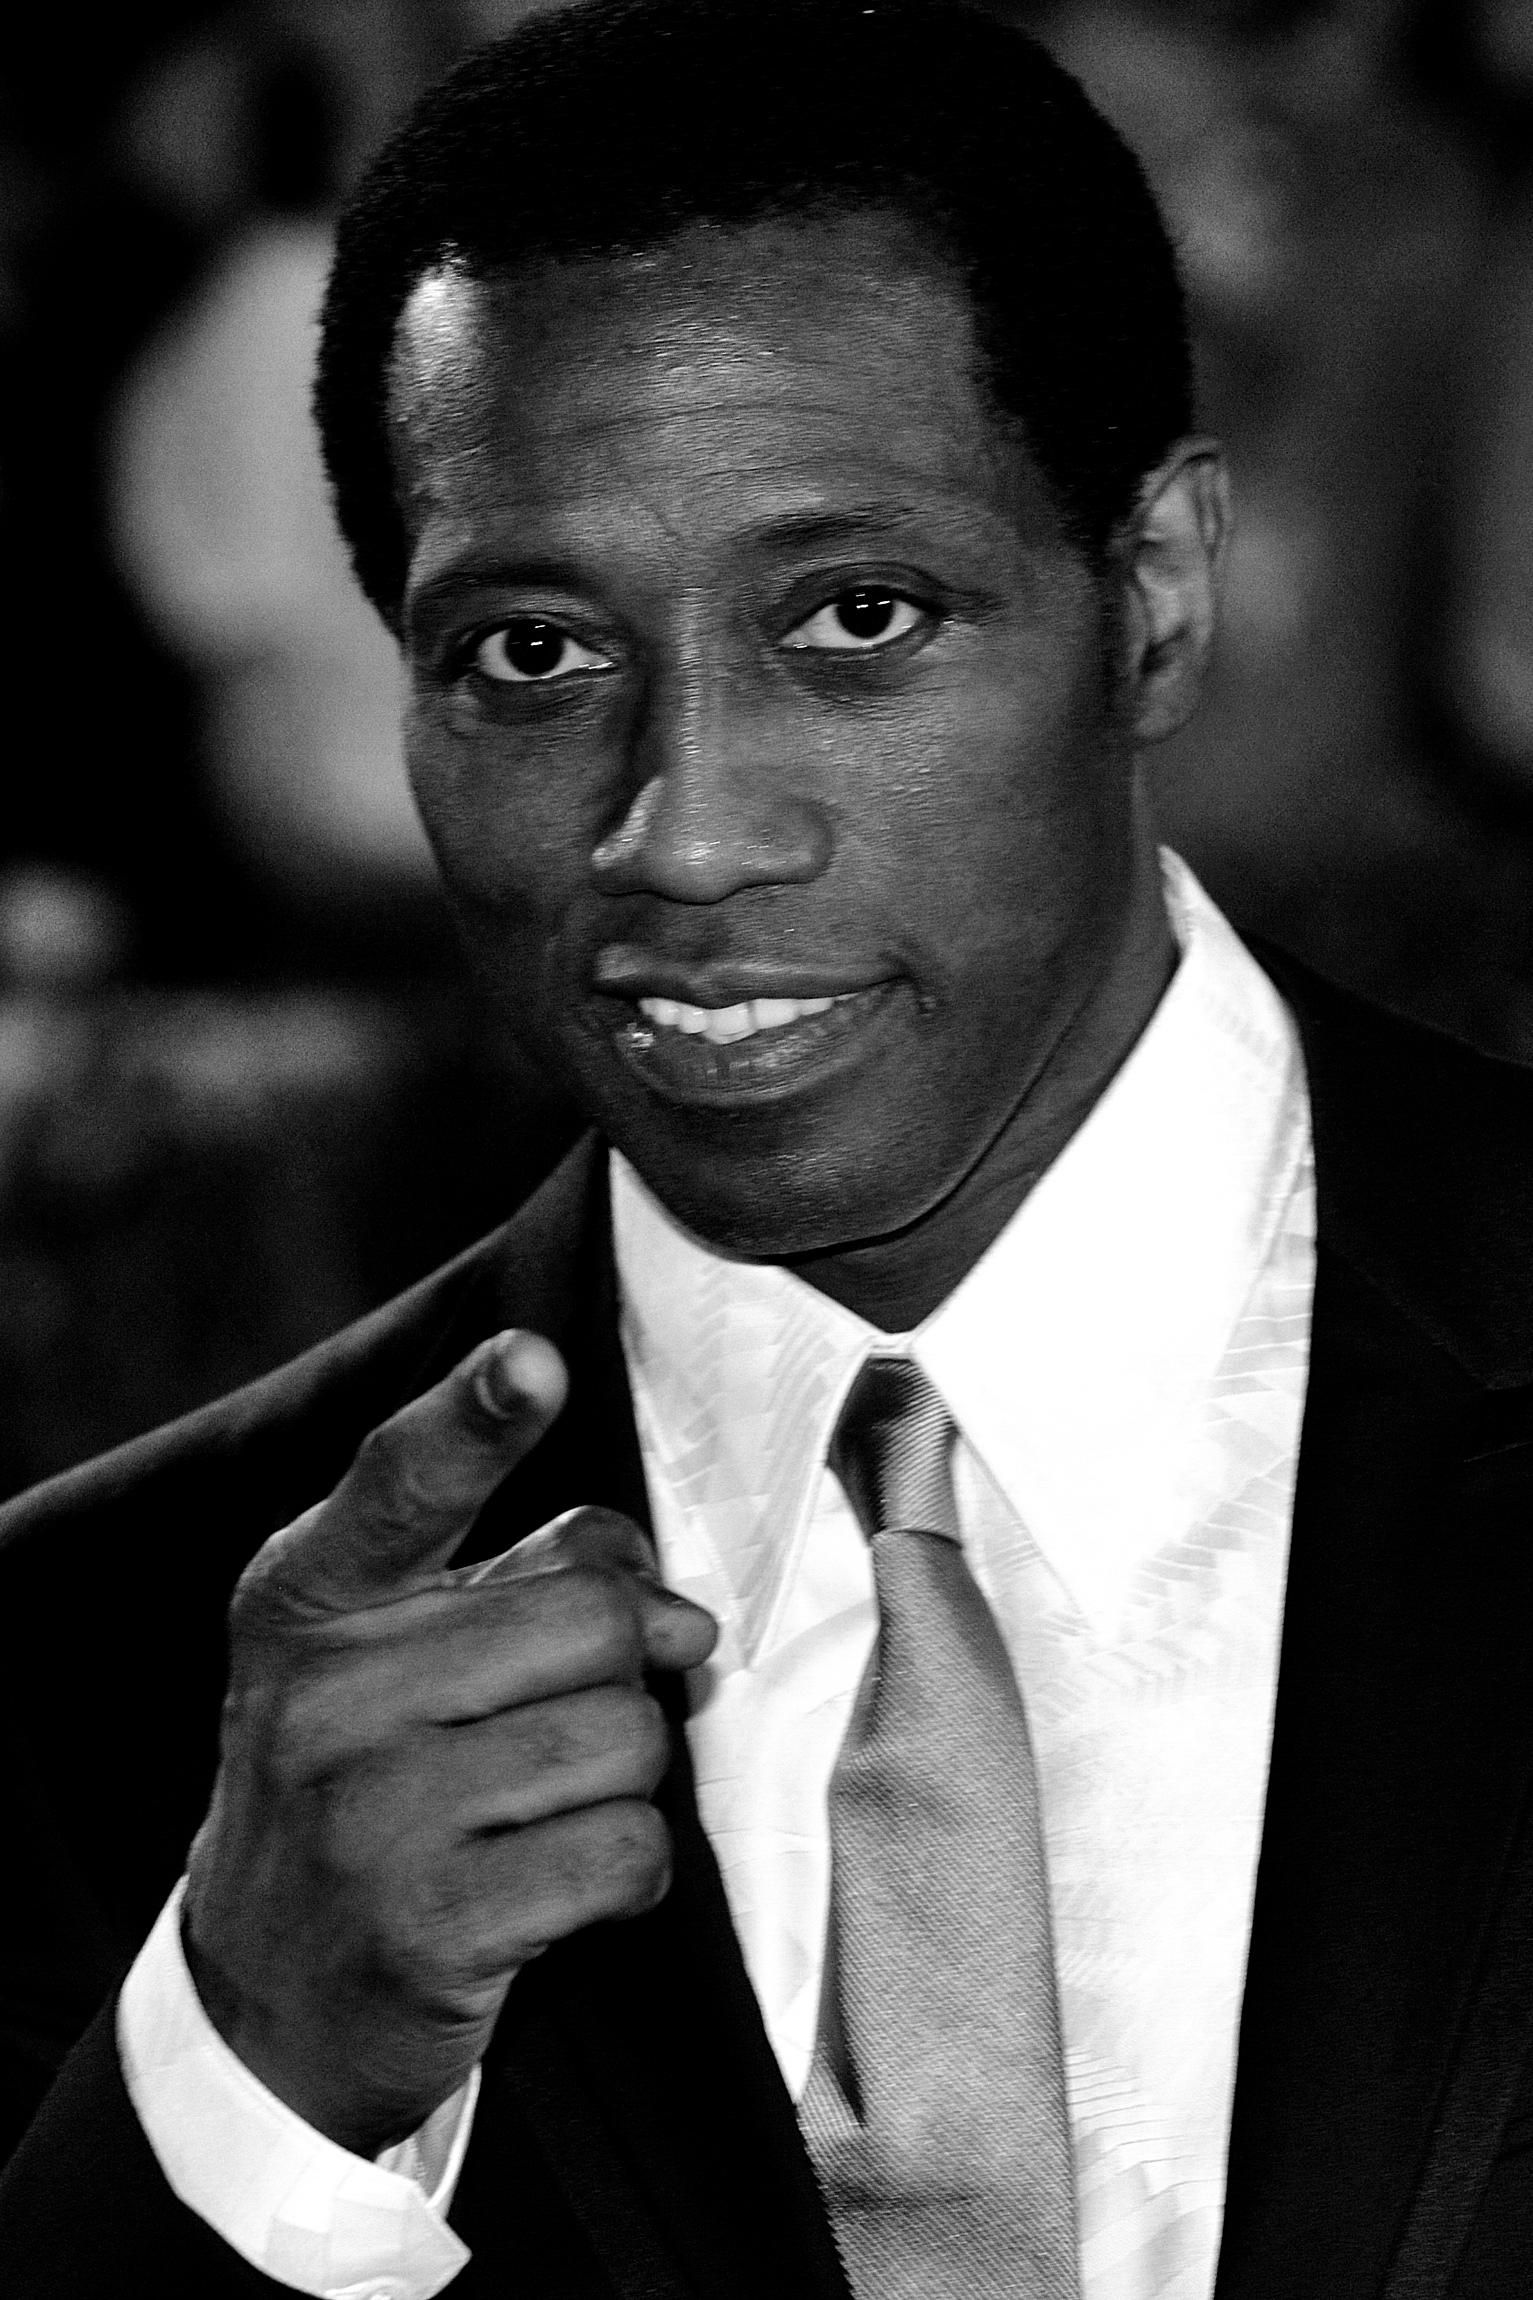 Wesley Snipes, Actor And Martial Artist. He Gained Fame